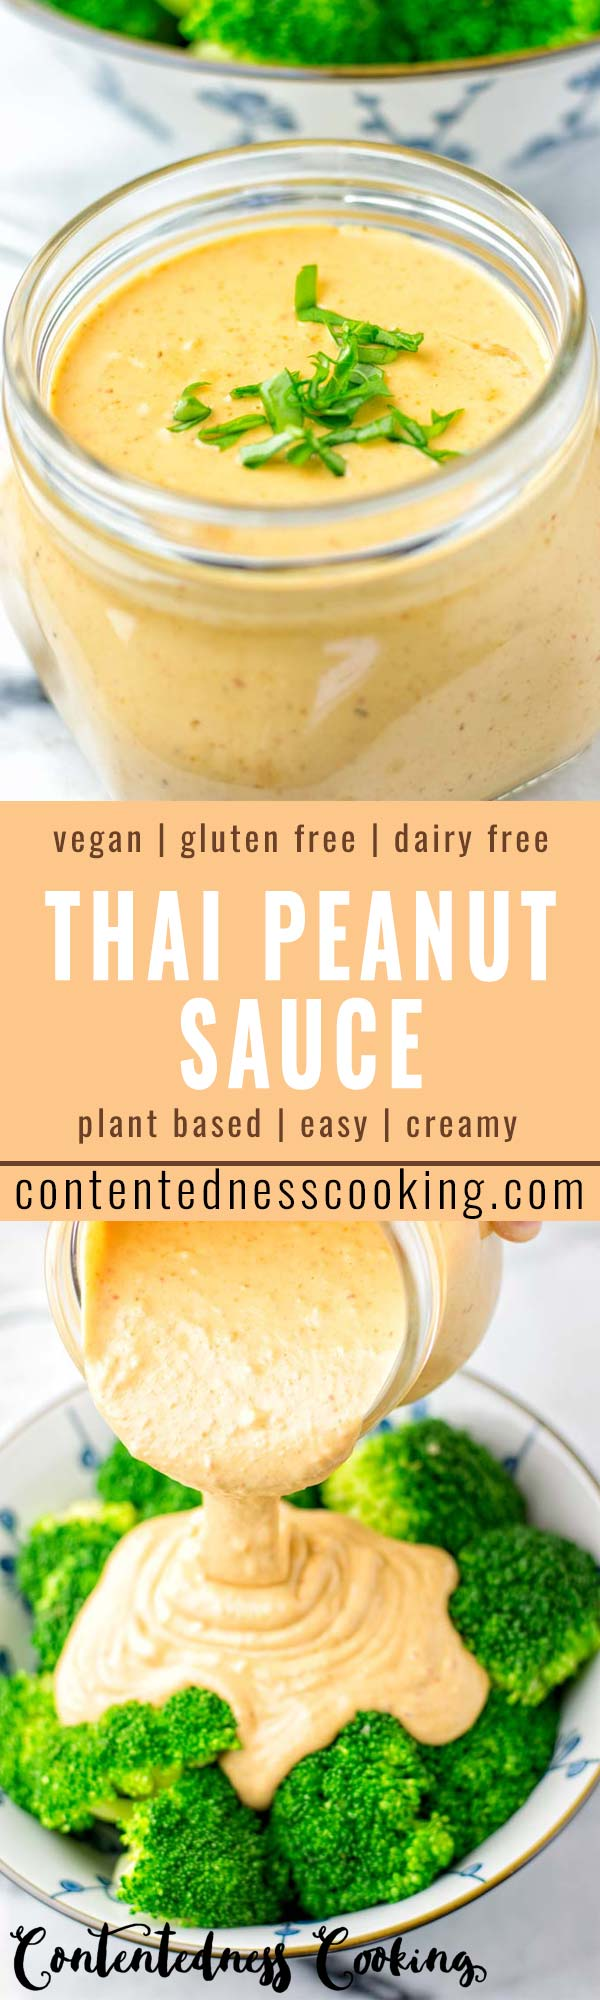 This Thai Peanut Sauce with Basil is naturally vegan, gluten free and super easy to make in less than 5 minutes. So versatile and a keeper for all your veggies, pasta and of course for your salads as a Thai Peanut dressing. Also the best for dinner, lunch, meal preparation and work lunches. #vegan #dairyfree #glutenfree #contentednesscooking #dinner #lunch #worklunchideas #vegetarian #thaipeanutsauce #budgetfriendlymeals #familydinnerideas